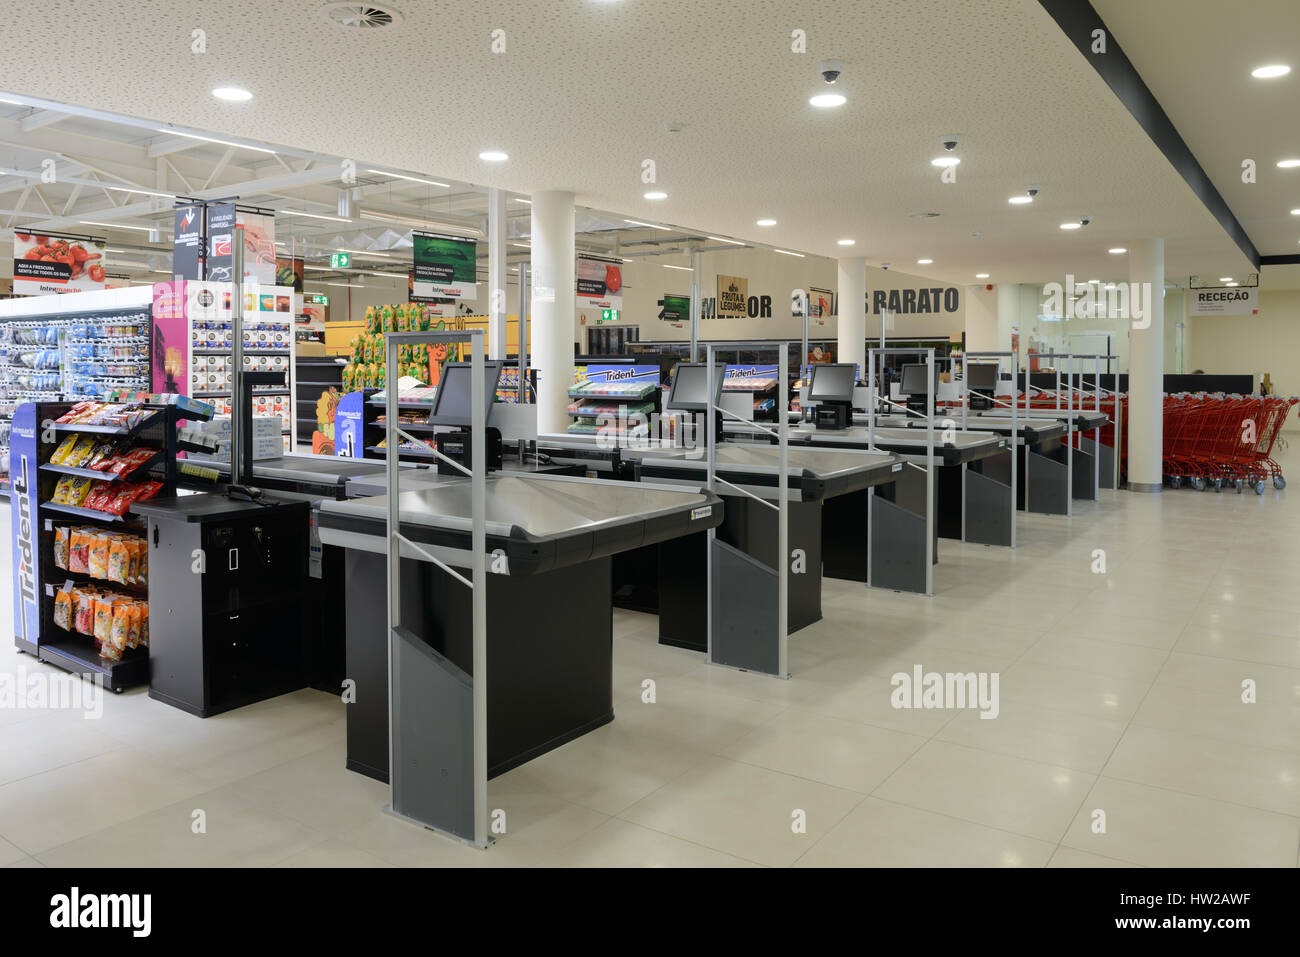 Checkout counters at an empty supermarket - Stock Image